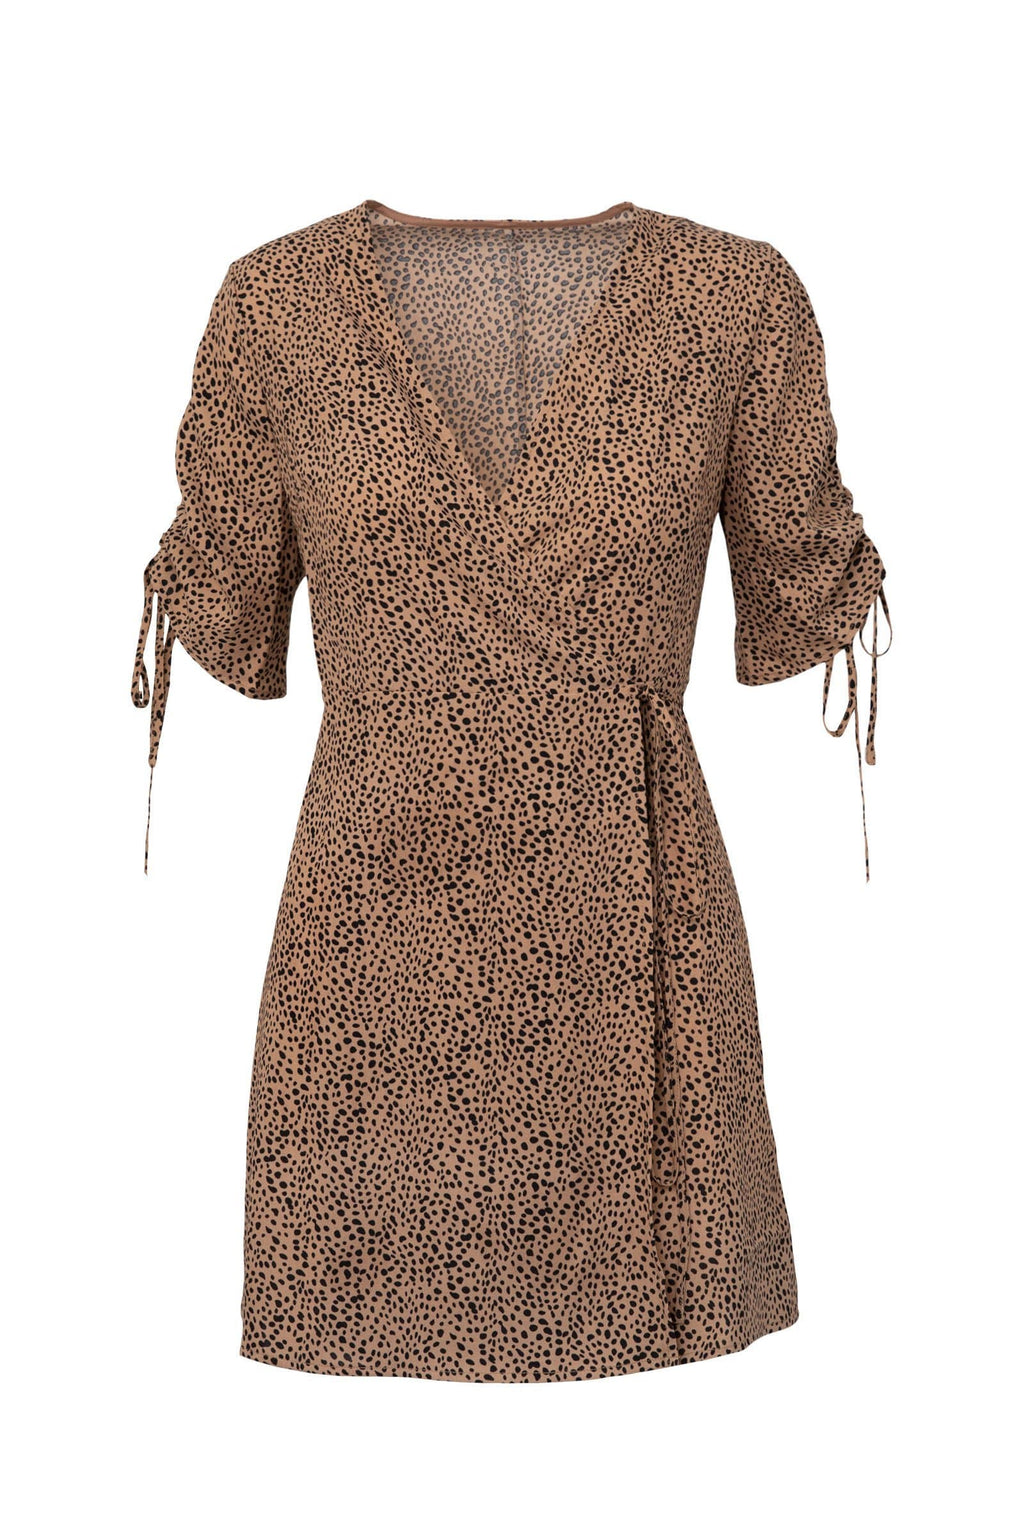 Cheetah Surplice Wrap Dress by J.ING Women's Clothing